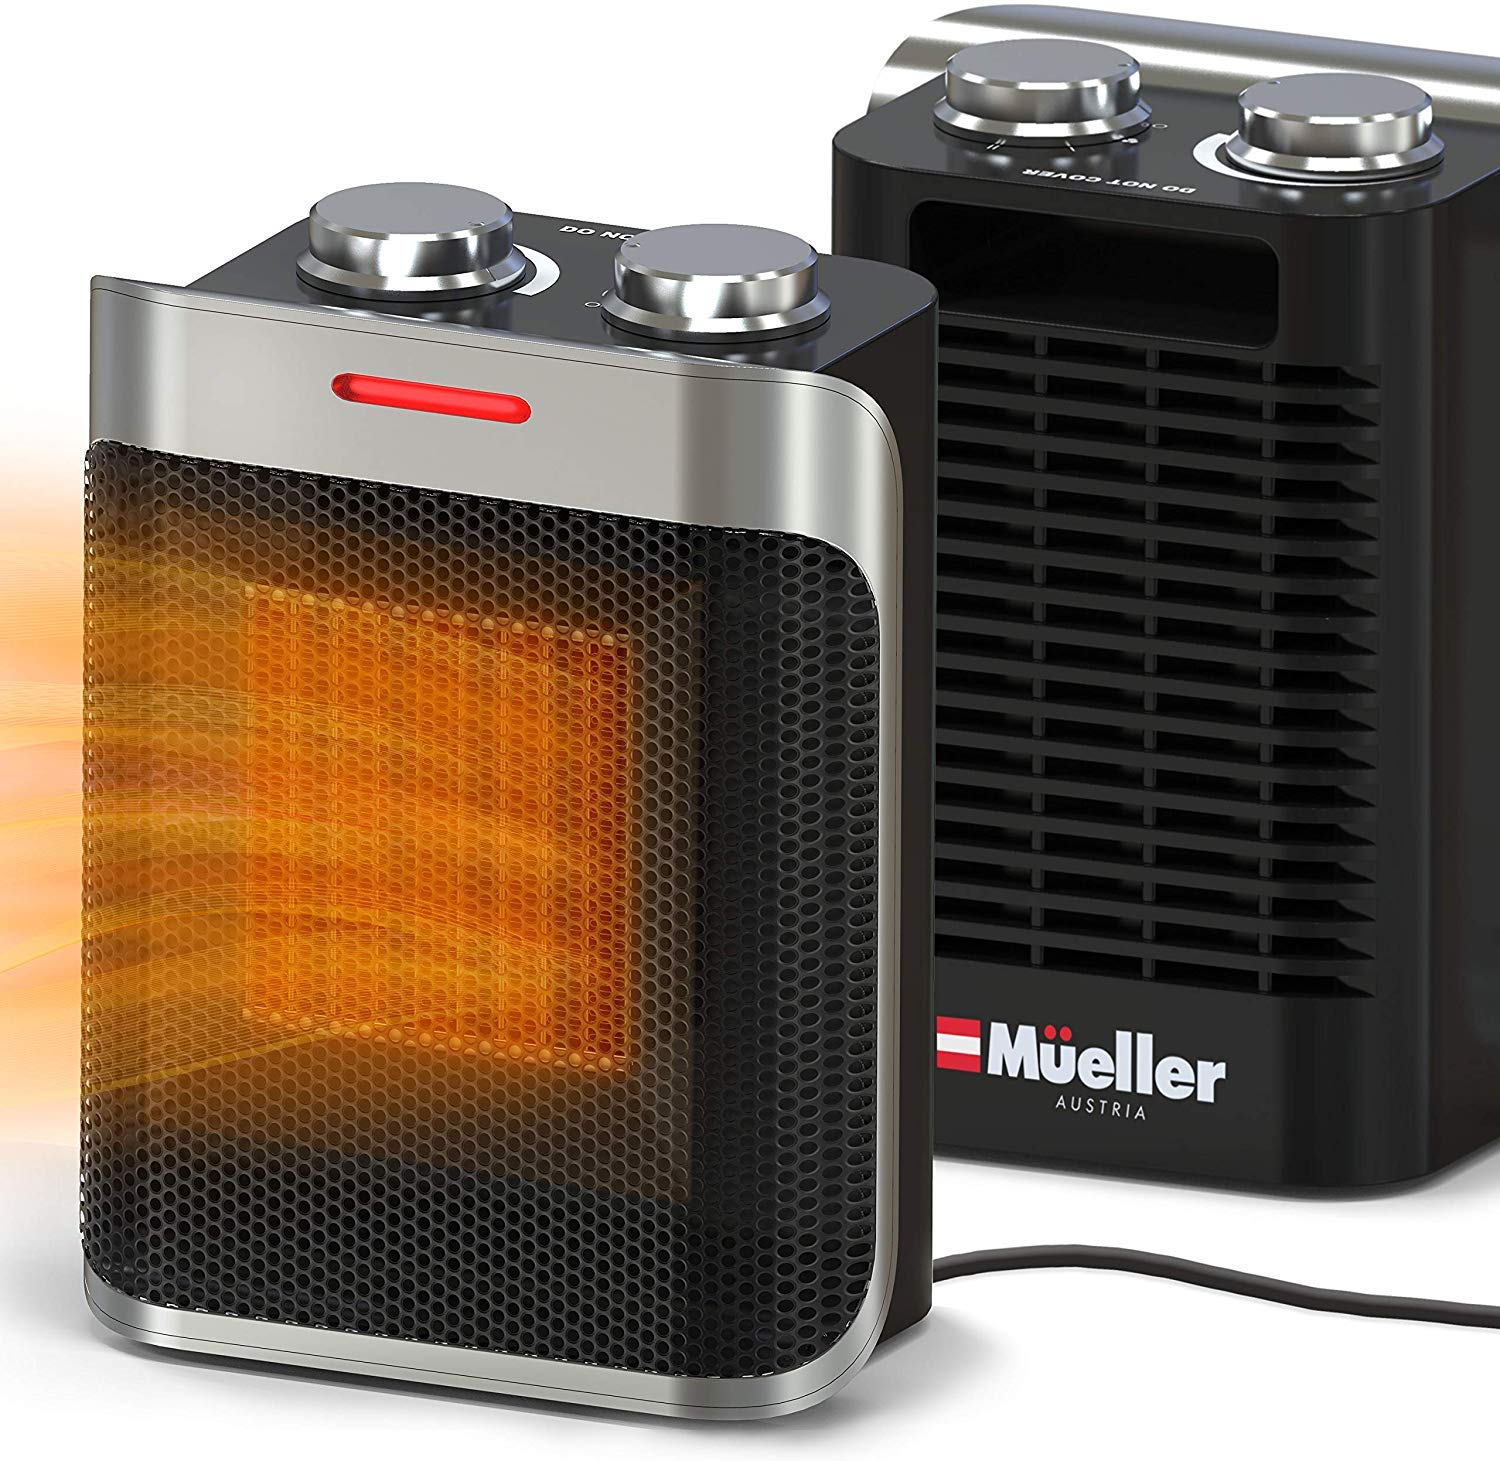 Mueller Portable Heater 750W/1500W Ceramic Space Heater, High Output Fan, Adjustable Thermostat, with overheat/tip over protection for Home Bedroom or Office, ETL Cerified 71ECaFuzqIL